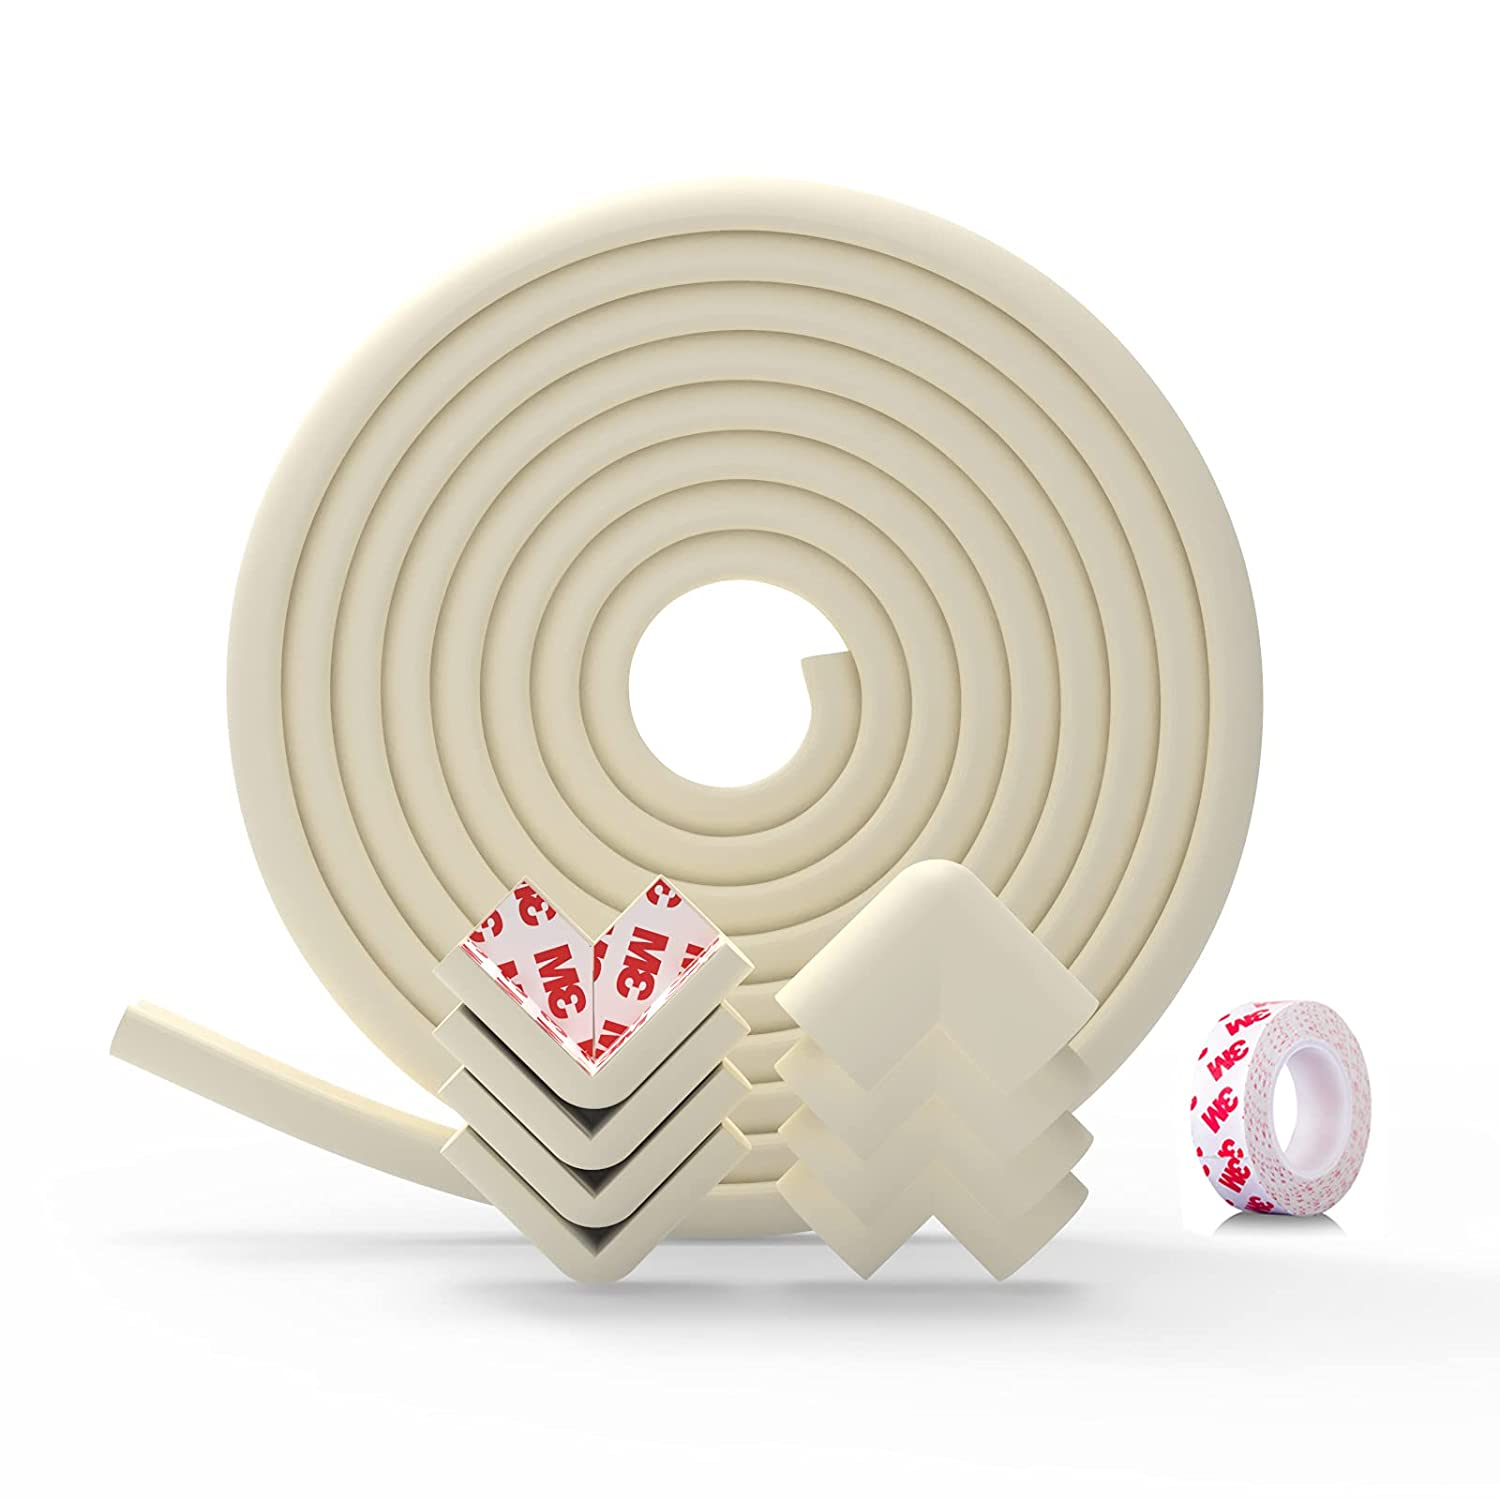 Baby Proofing Corner Guards Edge Protectors,Child Safety Foam Fireplace Table Bumper,3M Adhesion 19.3 ft (16.4 ft Edge + 8 Corners), Heavy-Duty (Cream-White) by Anairo (Cream White)